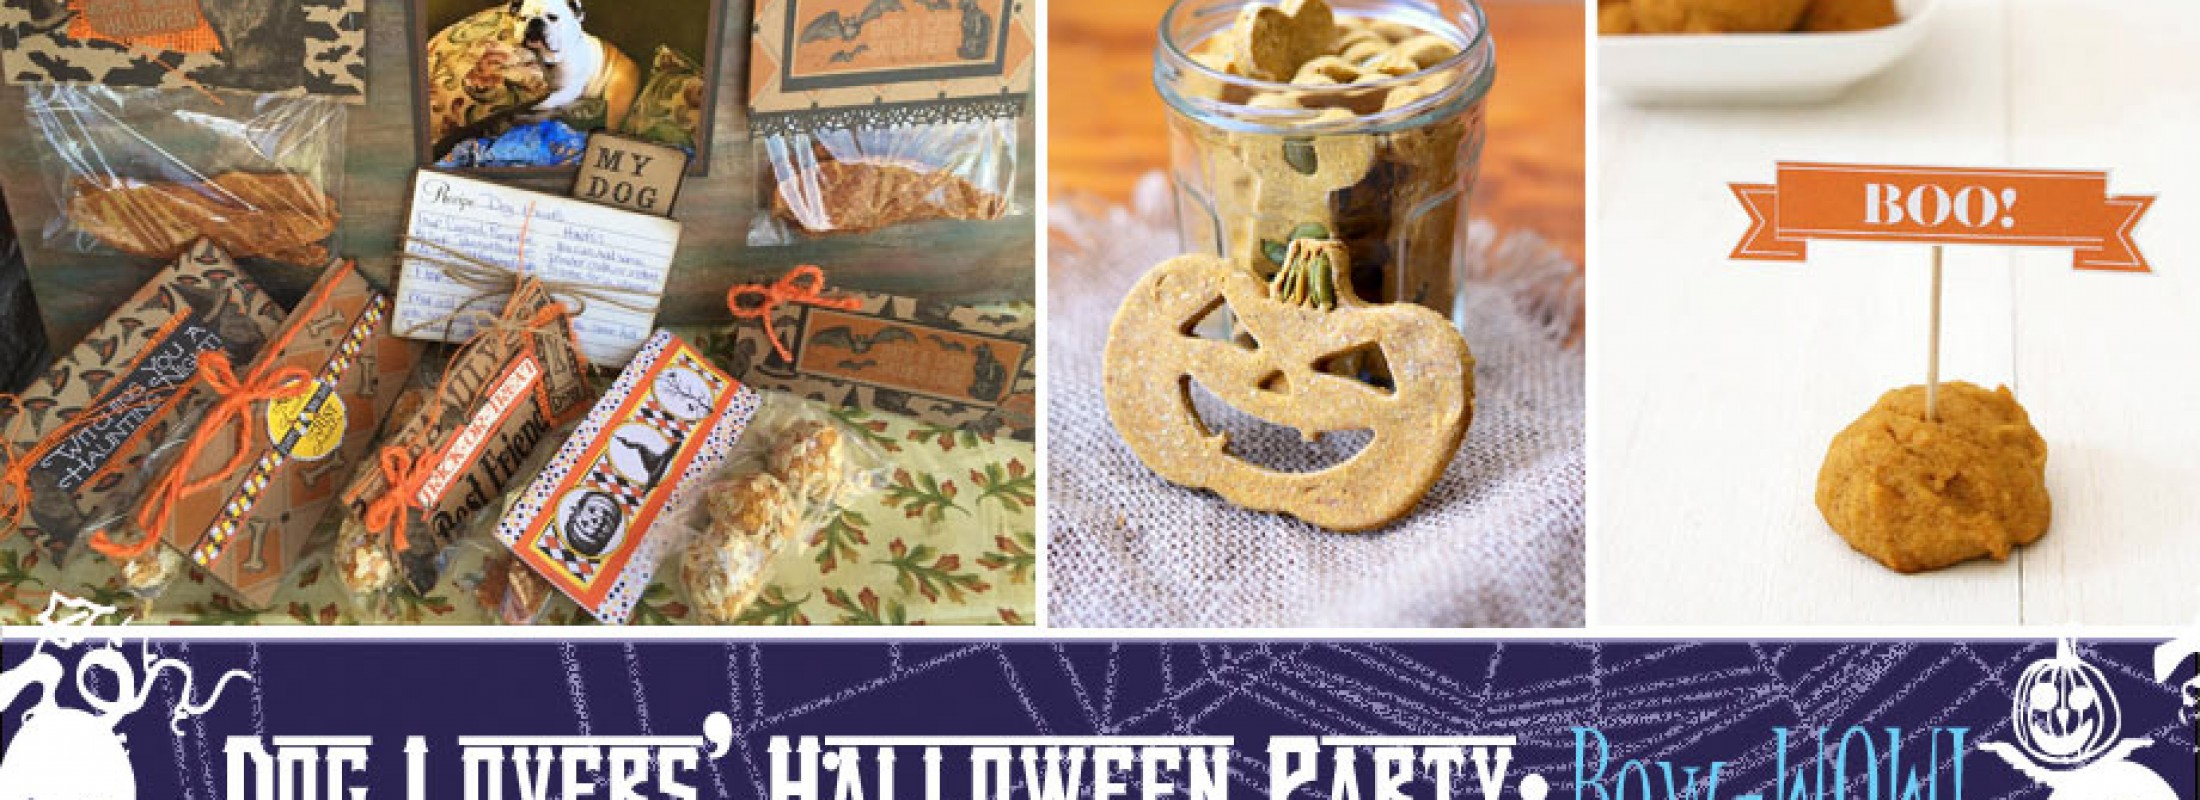 A Party Planning Guide for a Dog Lovers' Halloween Party